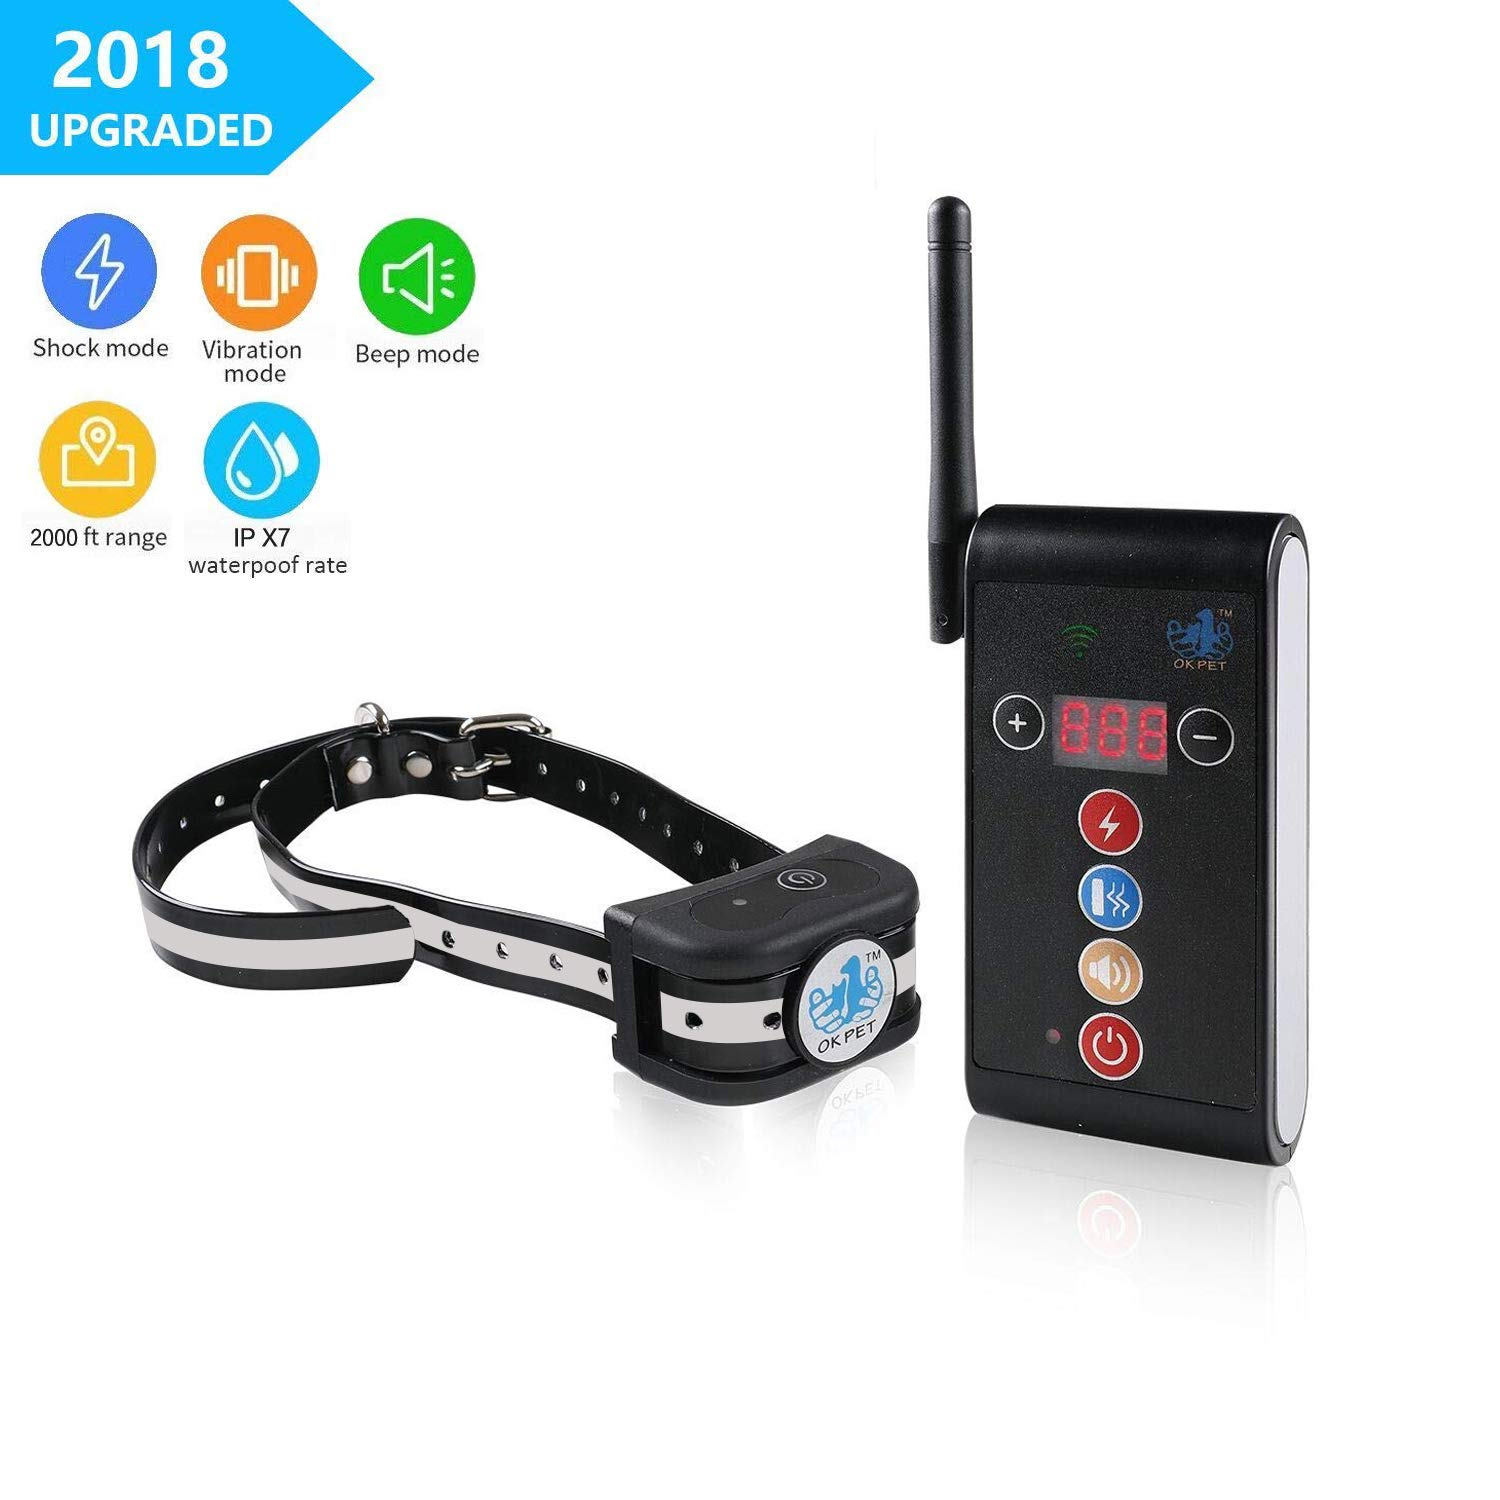 Dog Training Collar [NEW 2019], 2000ft Range Antenna Adjustable Remote Shock Training E-Collar, Rechargeable IPX7 Waterproof Collar, Beep/Vibration/Electric Shock Collar for Small Medium Large Dogs